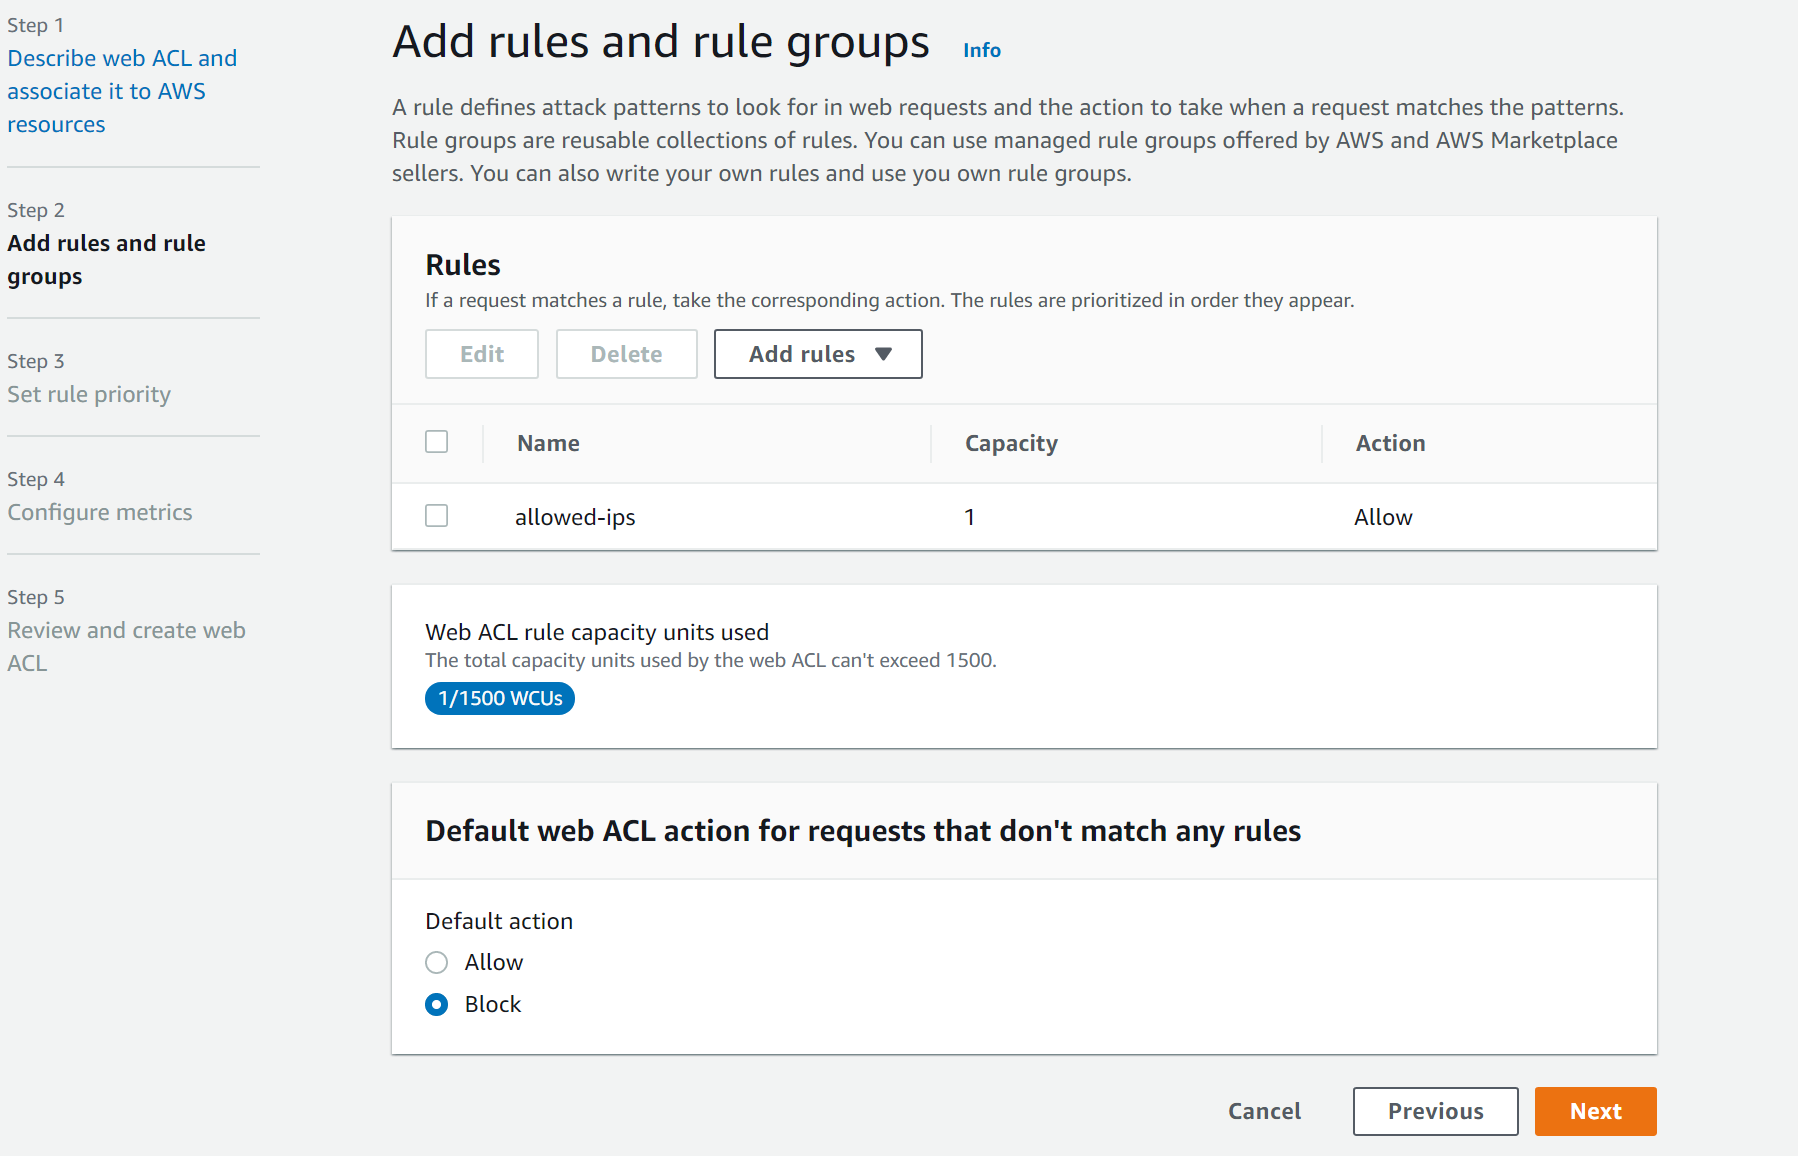 Add rules and rule groups